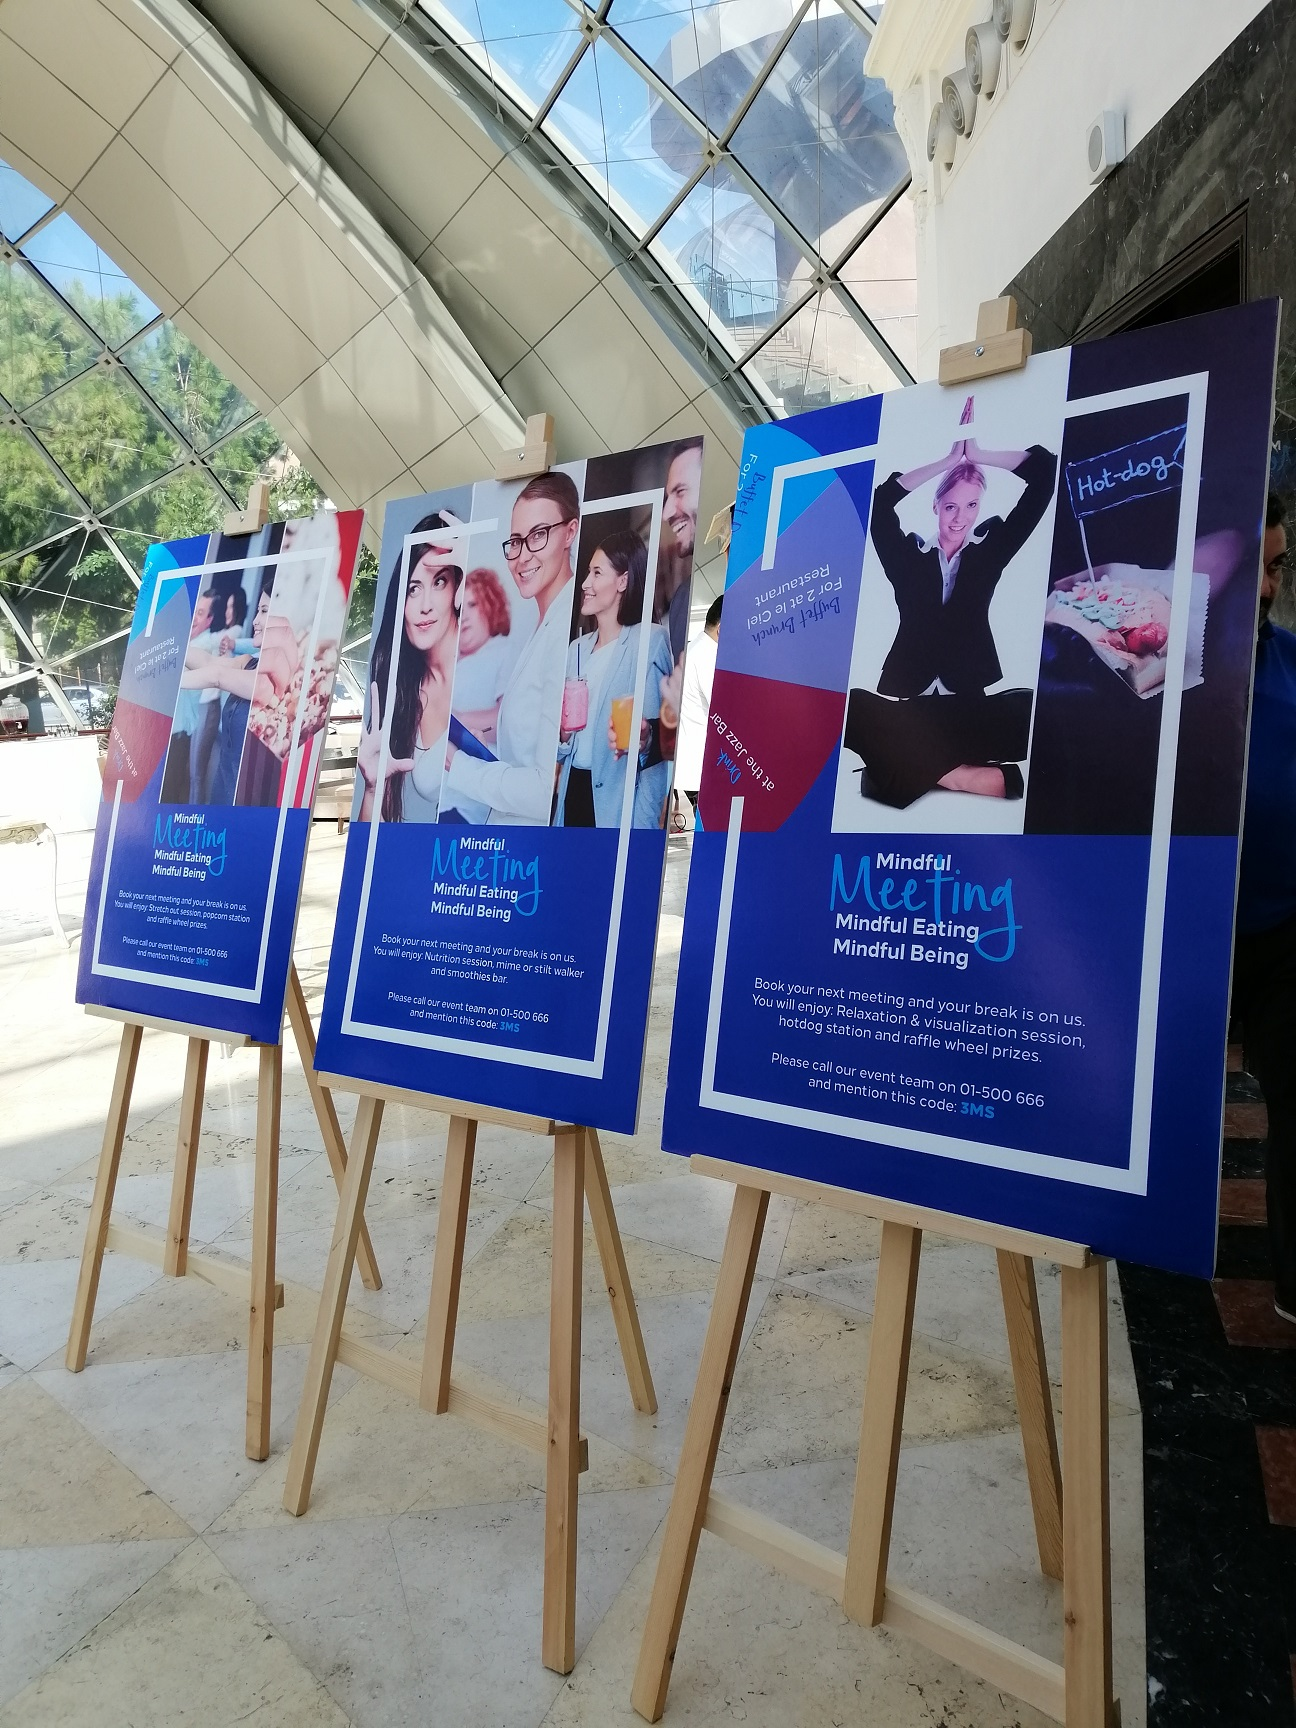 Hilton Hotels' 'Meet with Purpose' (3)